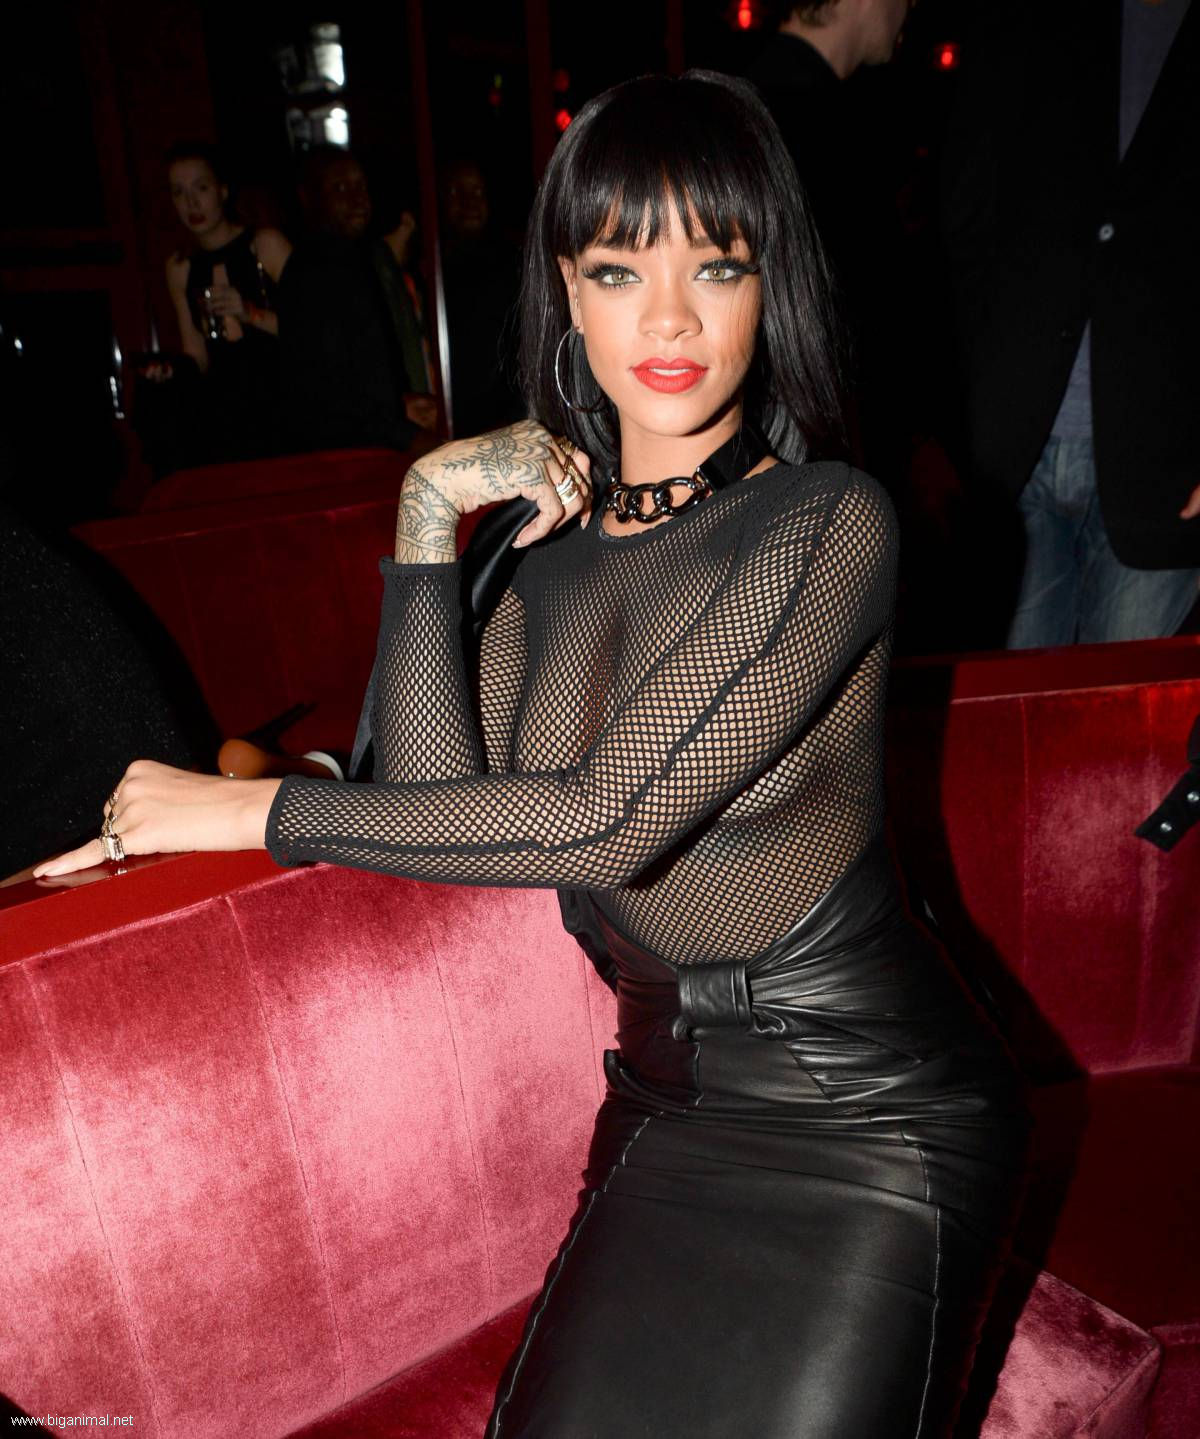 Rihanna - Balmain Fashion Show Afterparty (13 HQ fotografija)